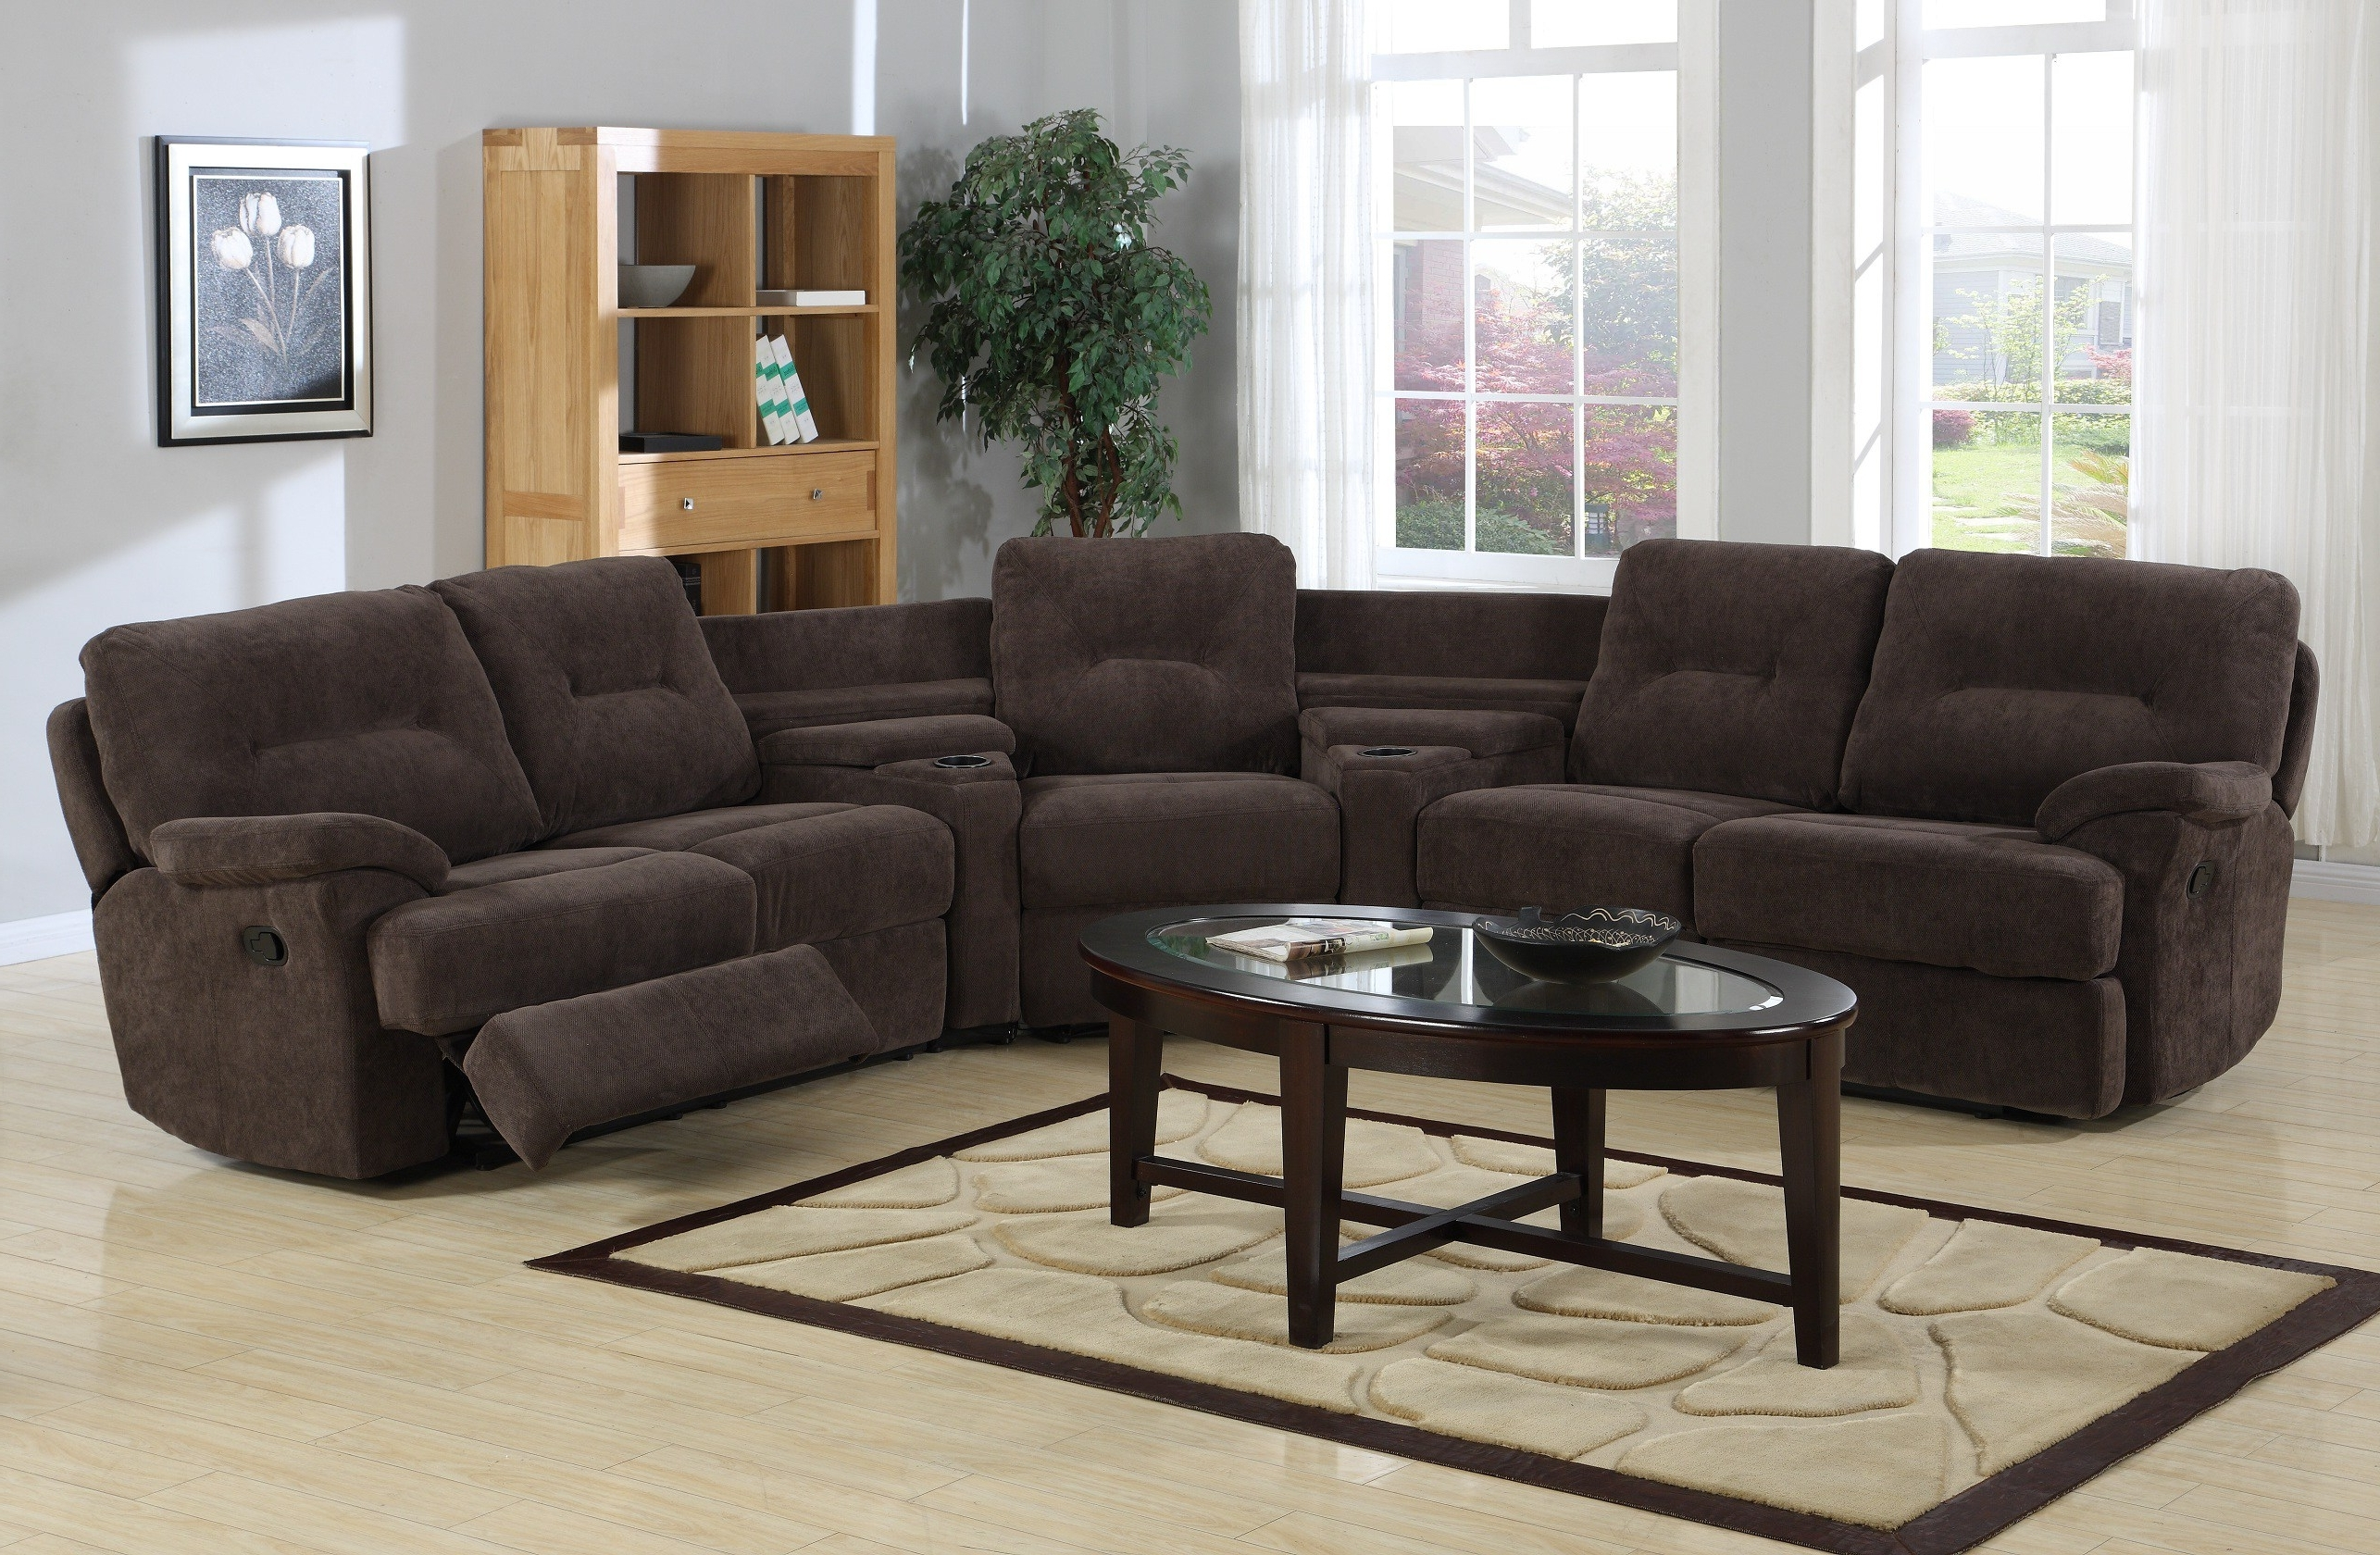 Widely Used Portland Oregon Sectional Sofas With Regard To Sectional Sofas Portland Oregon (View 14 of 20)